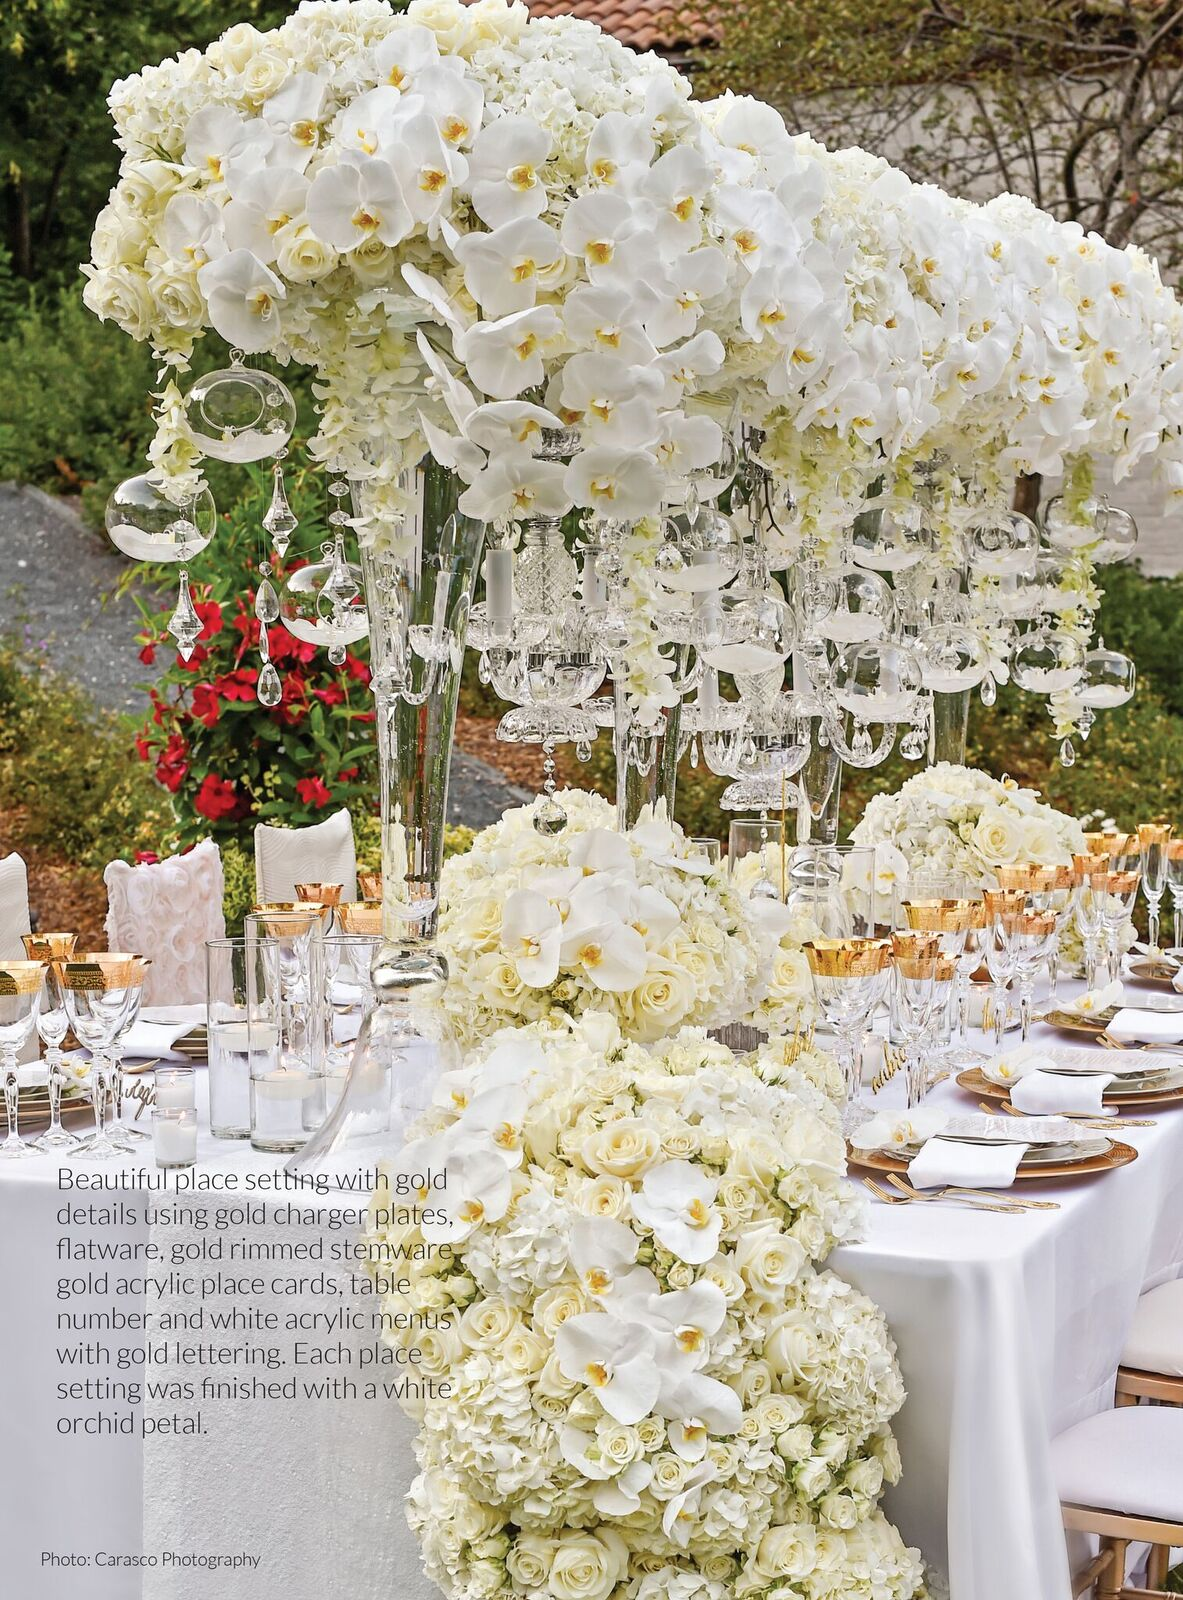 akeshi-akinseye_kesh-events_the-art-of-floral-and-event-design-5